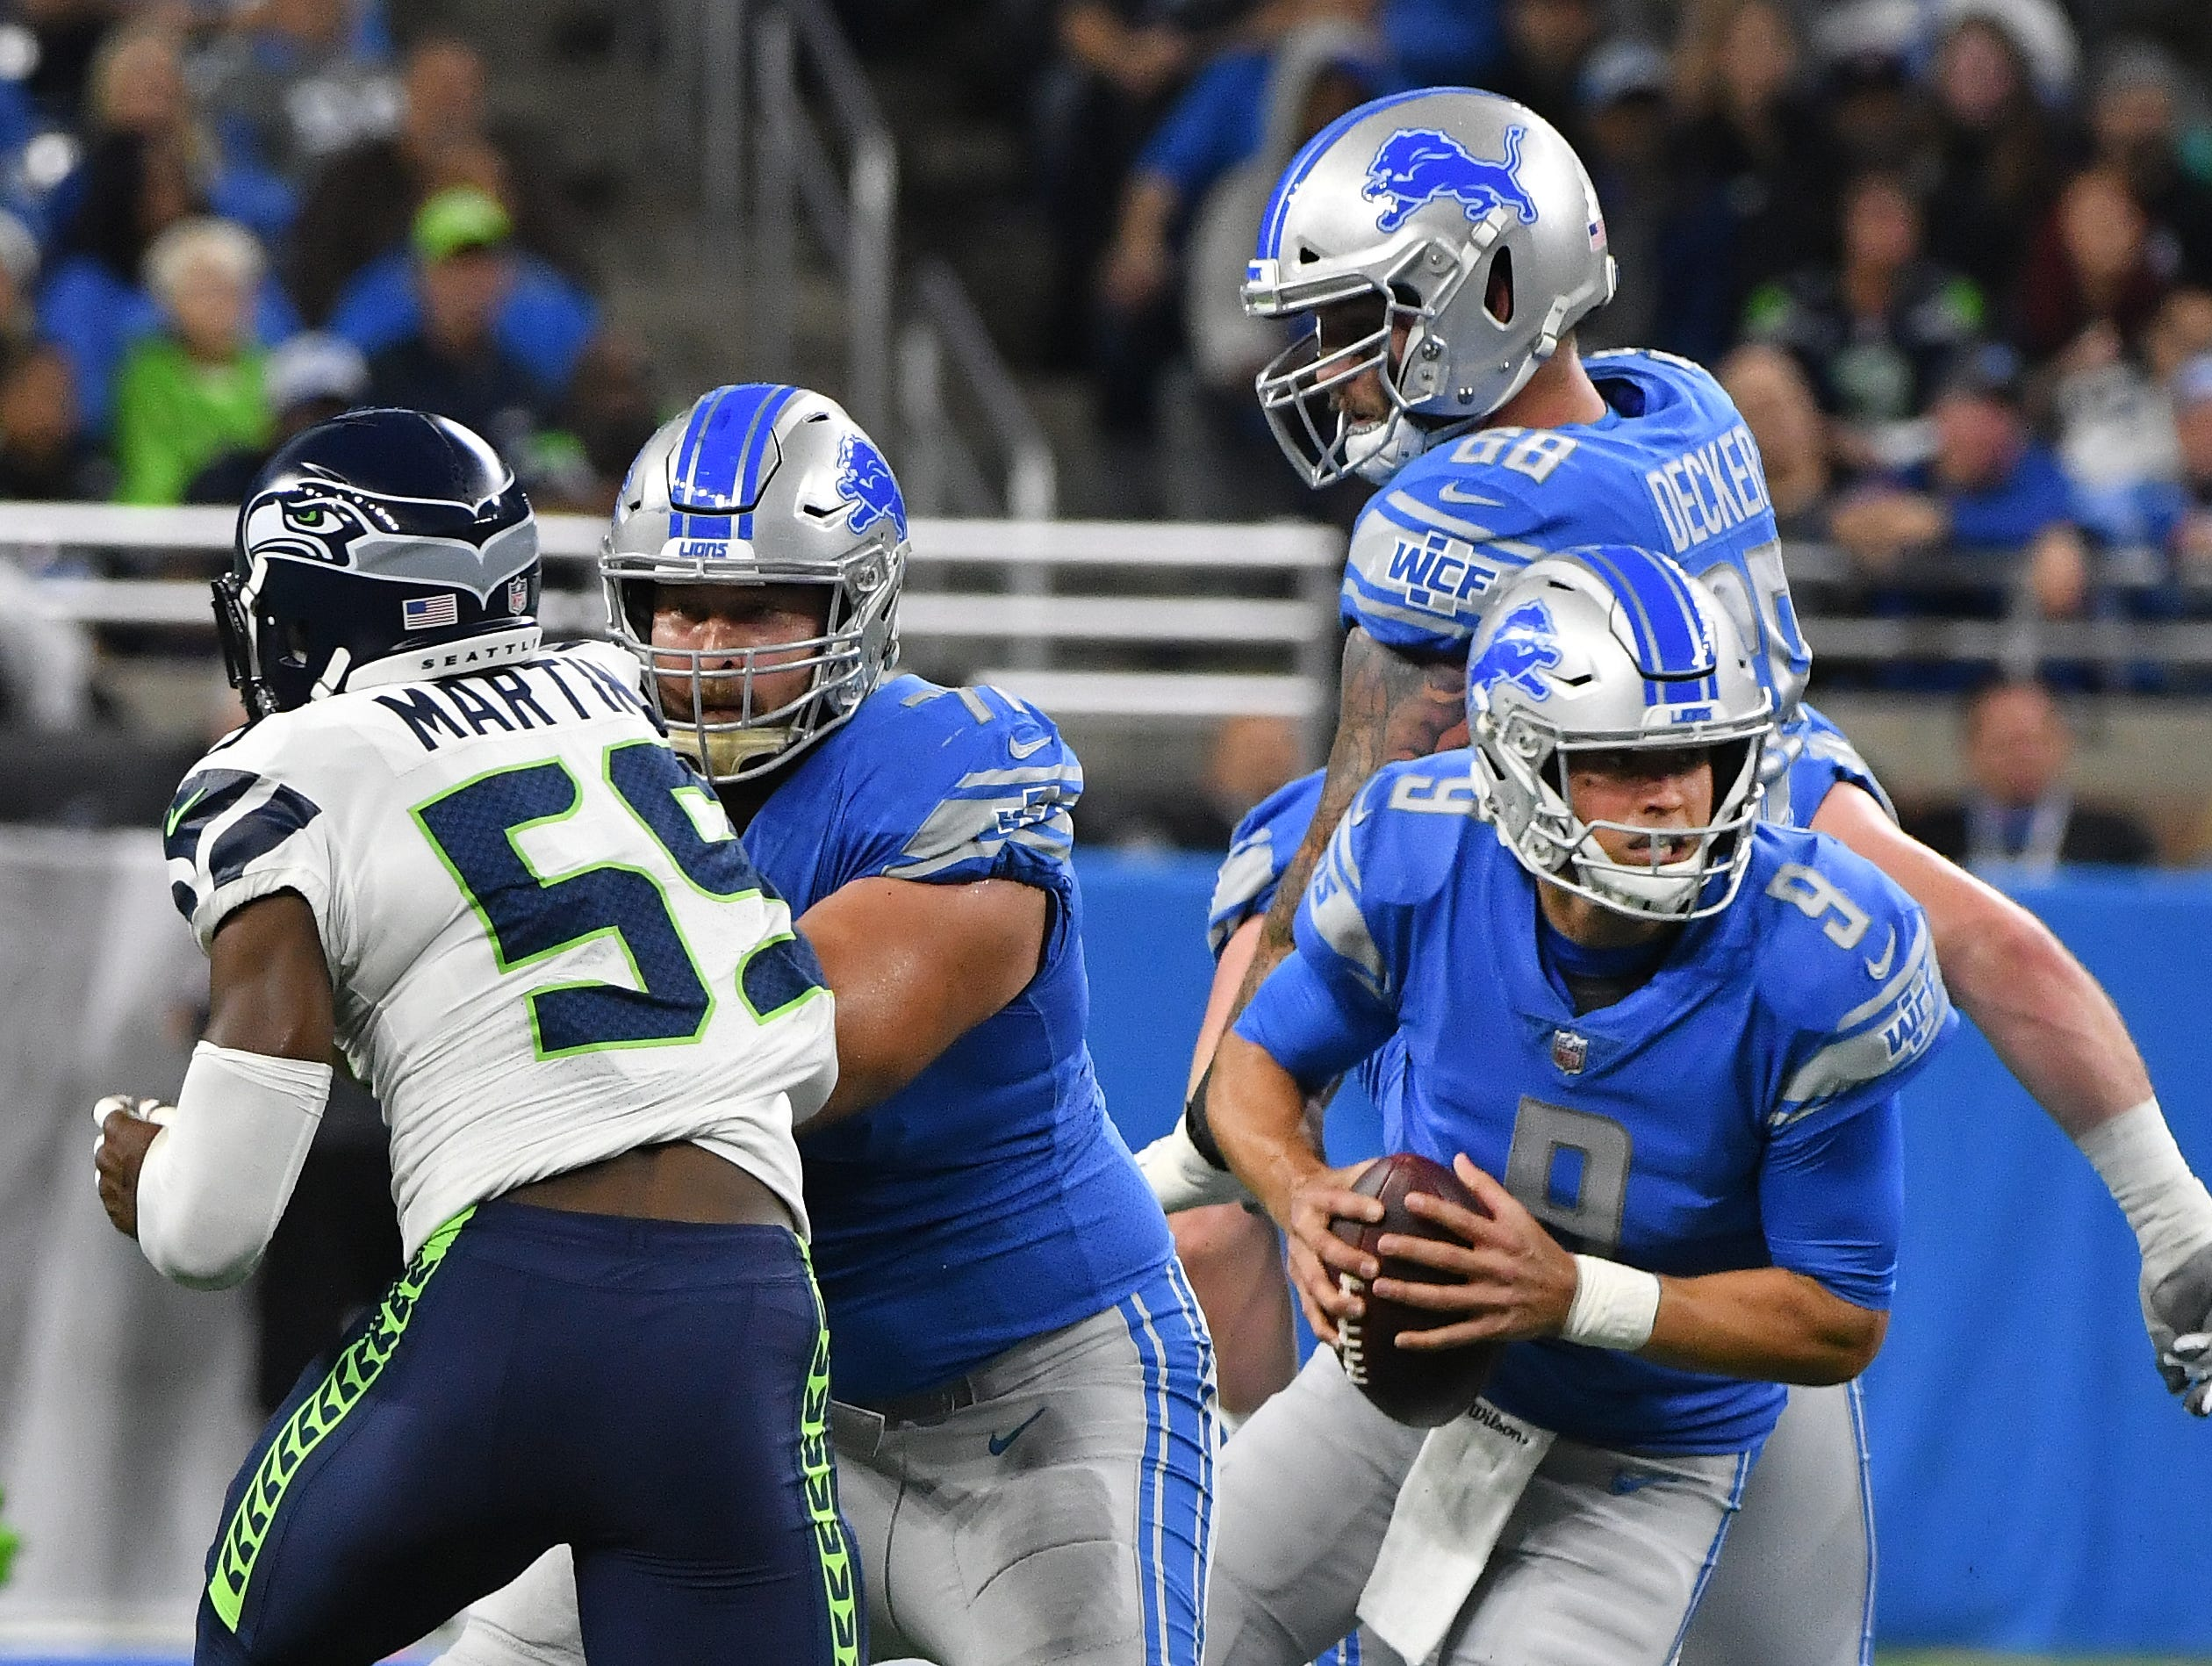 Lions quarterback Matthew Stafford scrambles out of pressure and throws a touchdown pass to Marvin Jones Jr. in the first quarter.